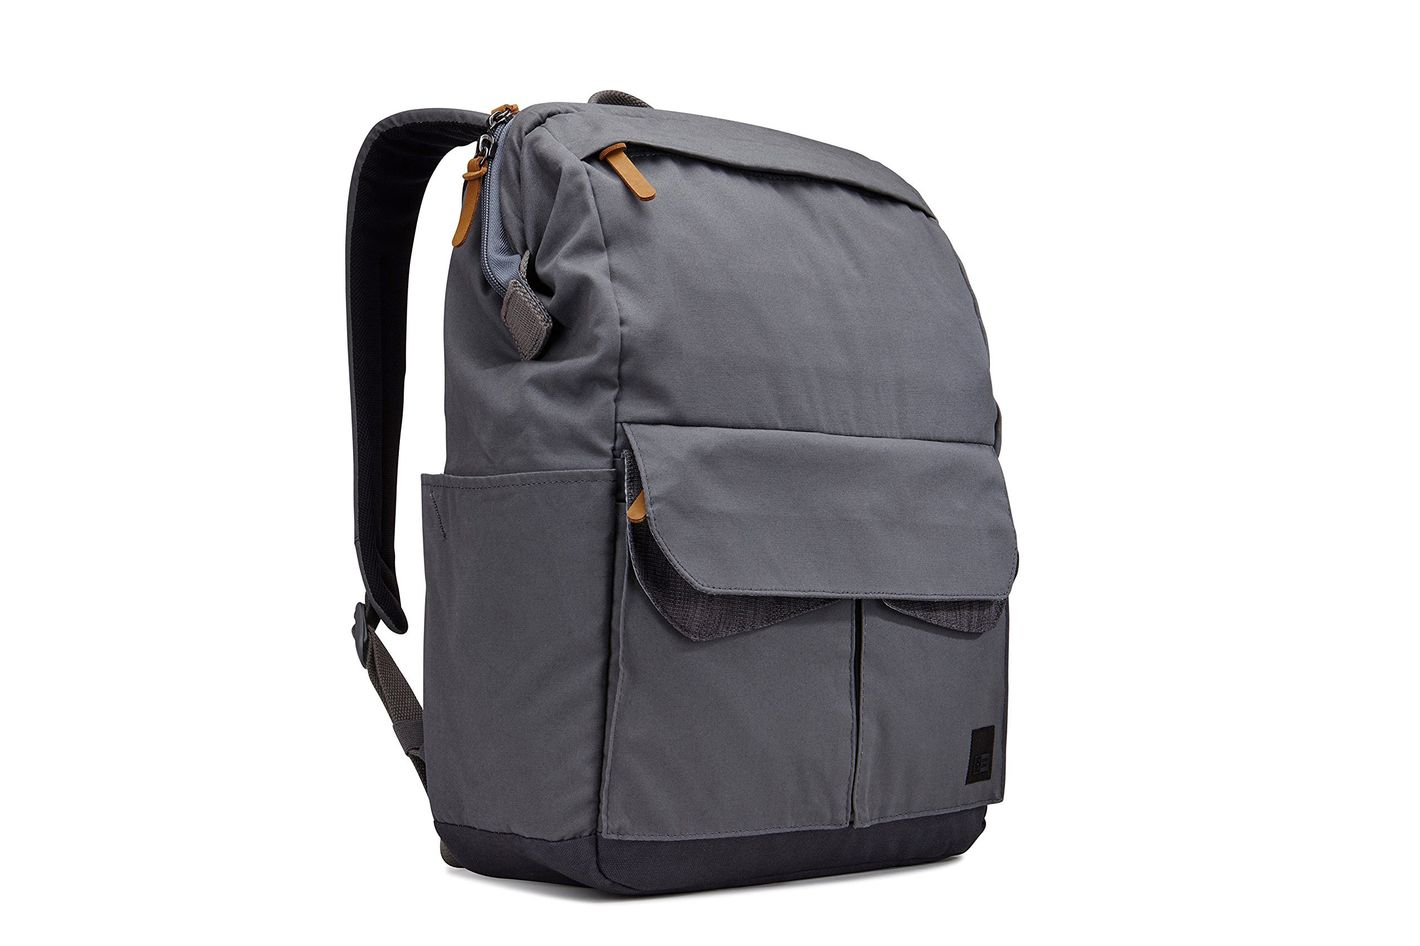 13 Best Backpacks for College Students